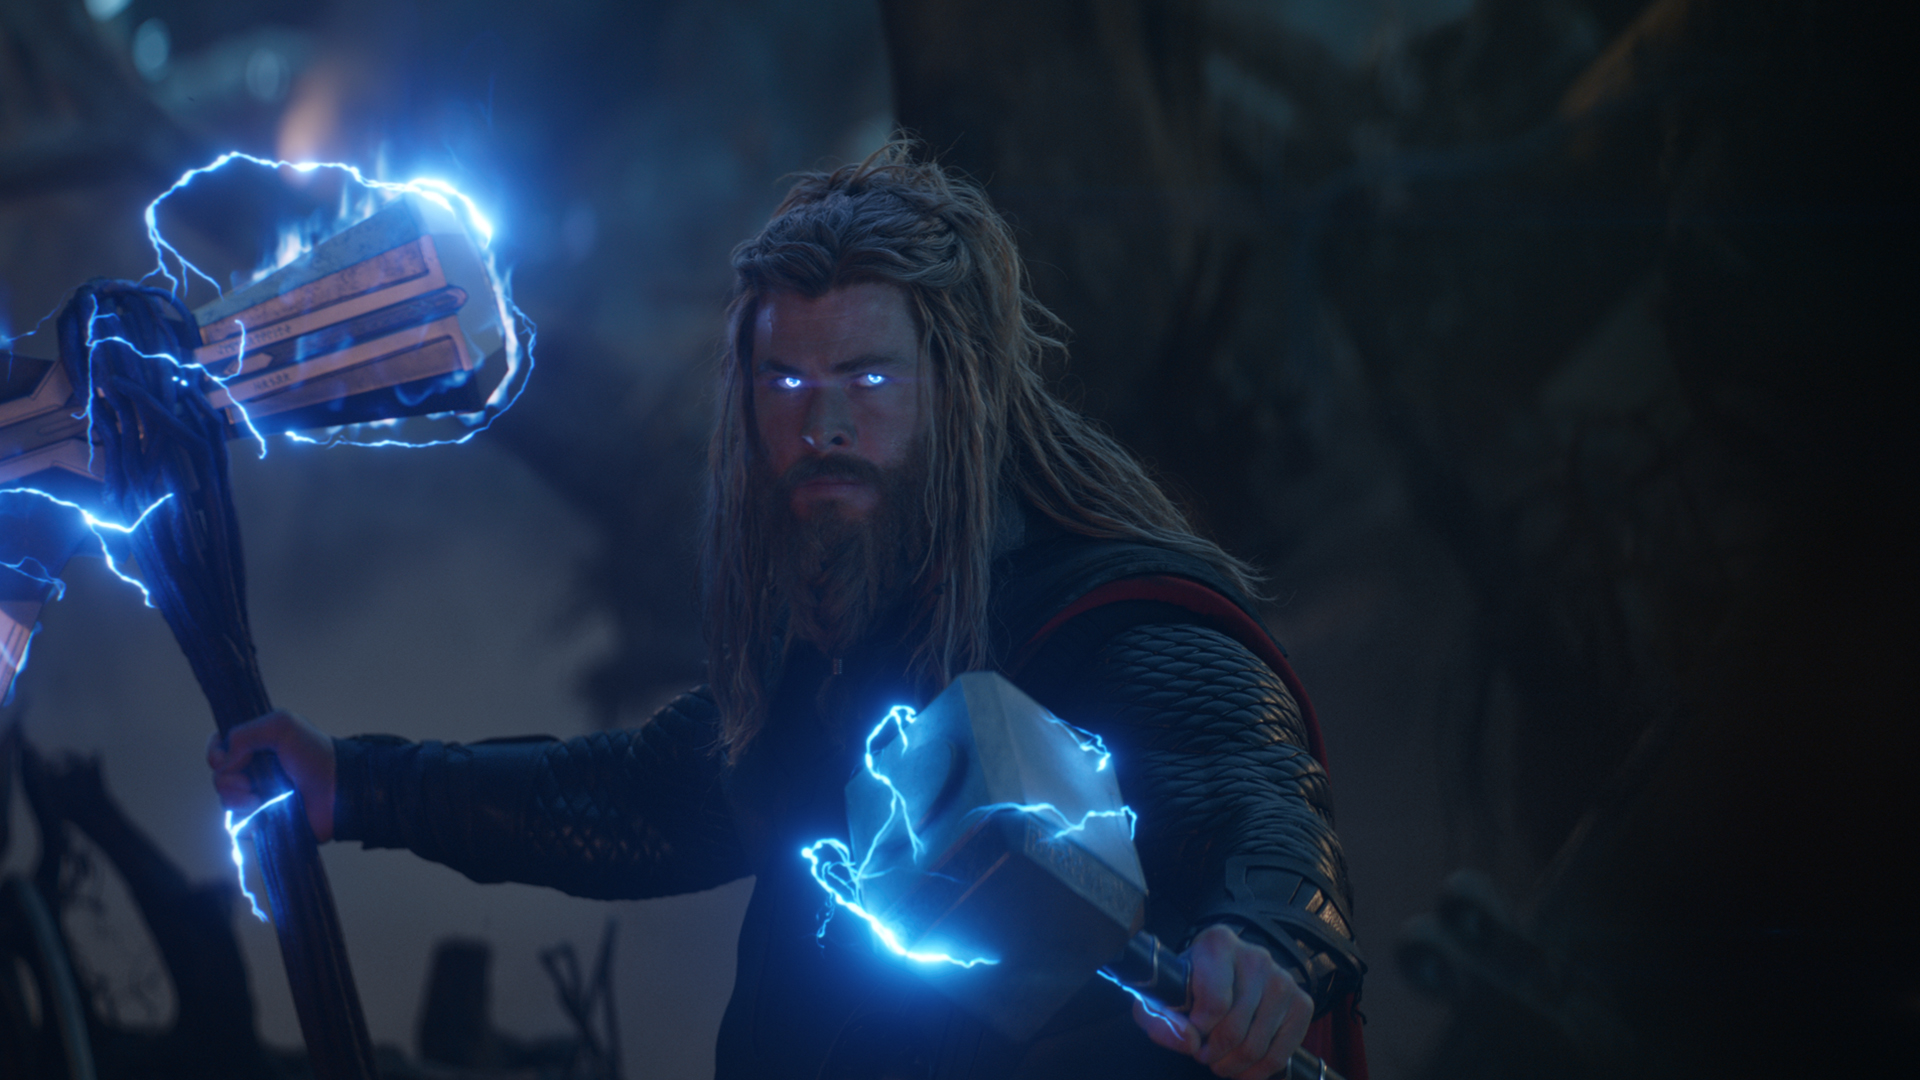 Thor in Endgame gives us fundamental lessons in employee morale